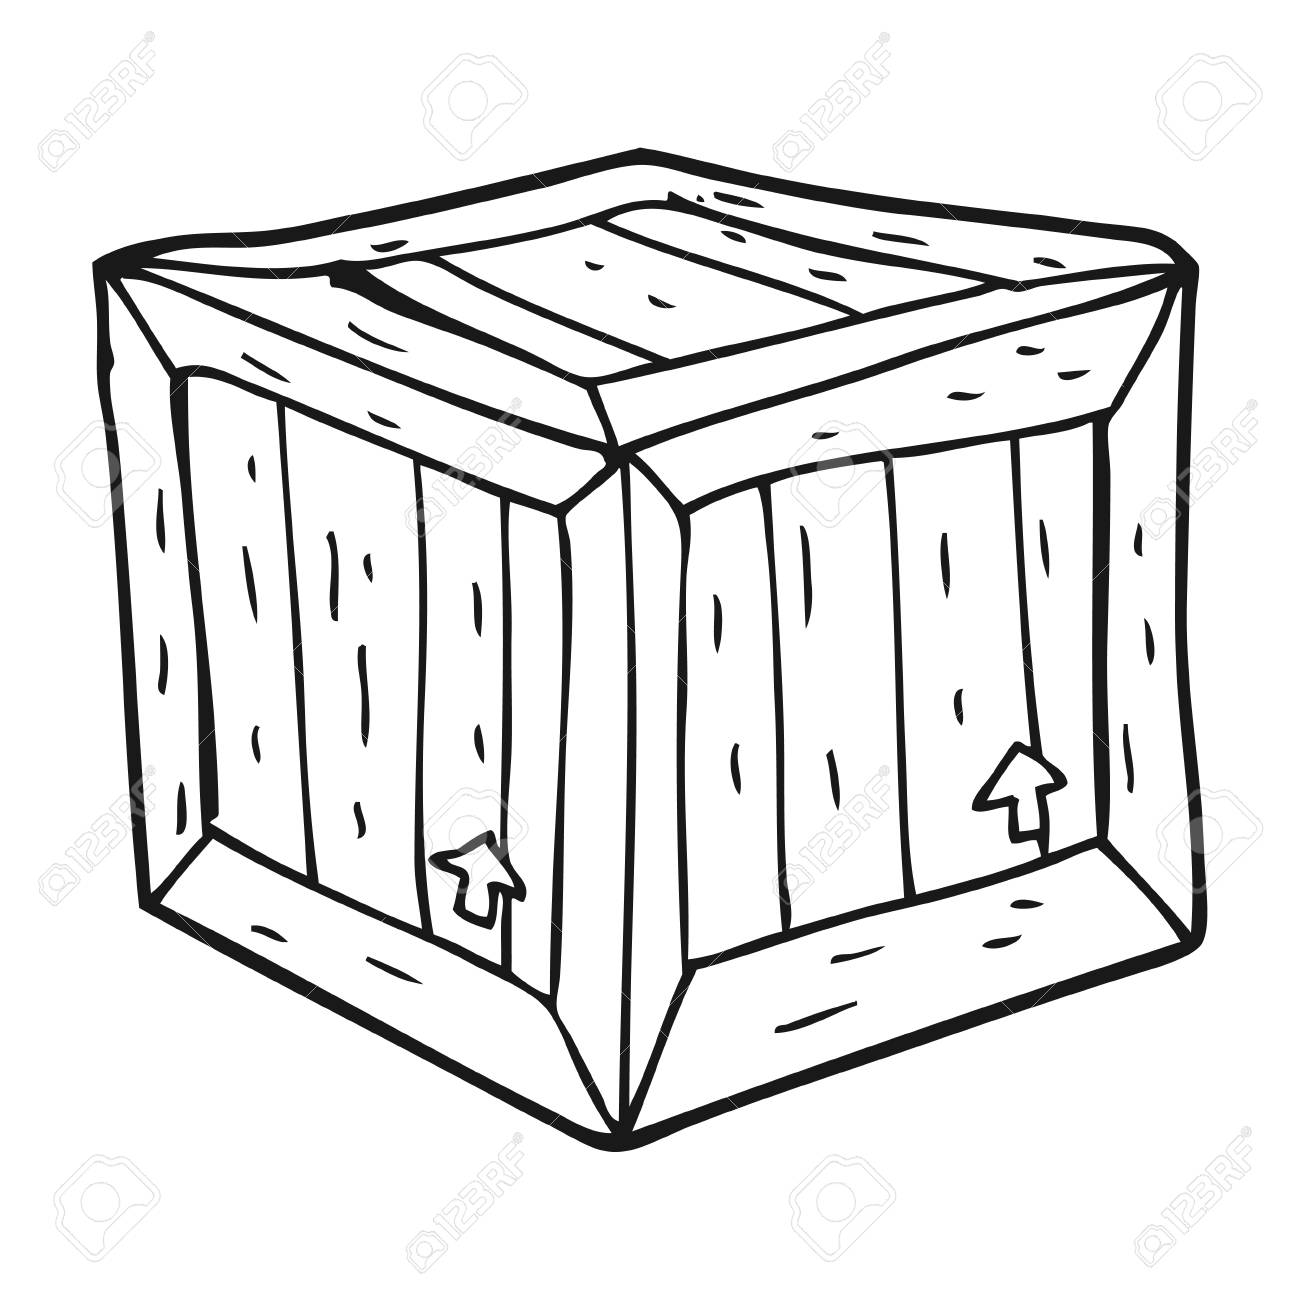 Freehand Drawn Black And White Cartoon Box Royalty Free Cliparts Vectors And Stock Illustration Image 53287297